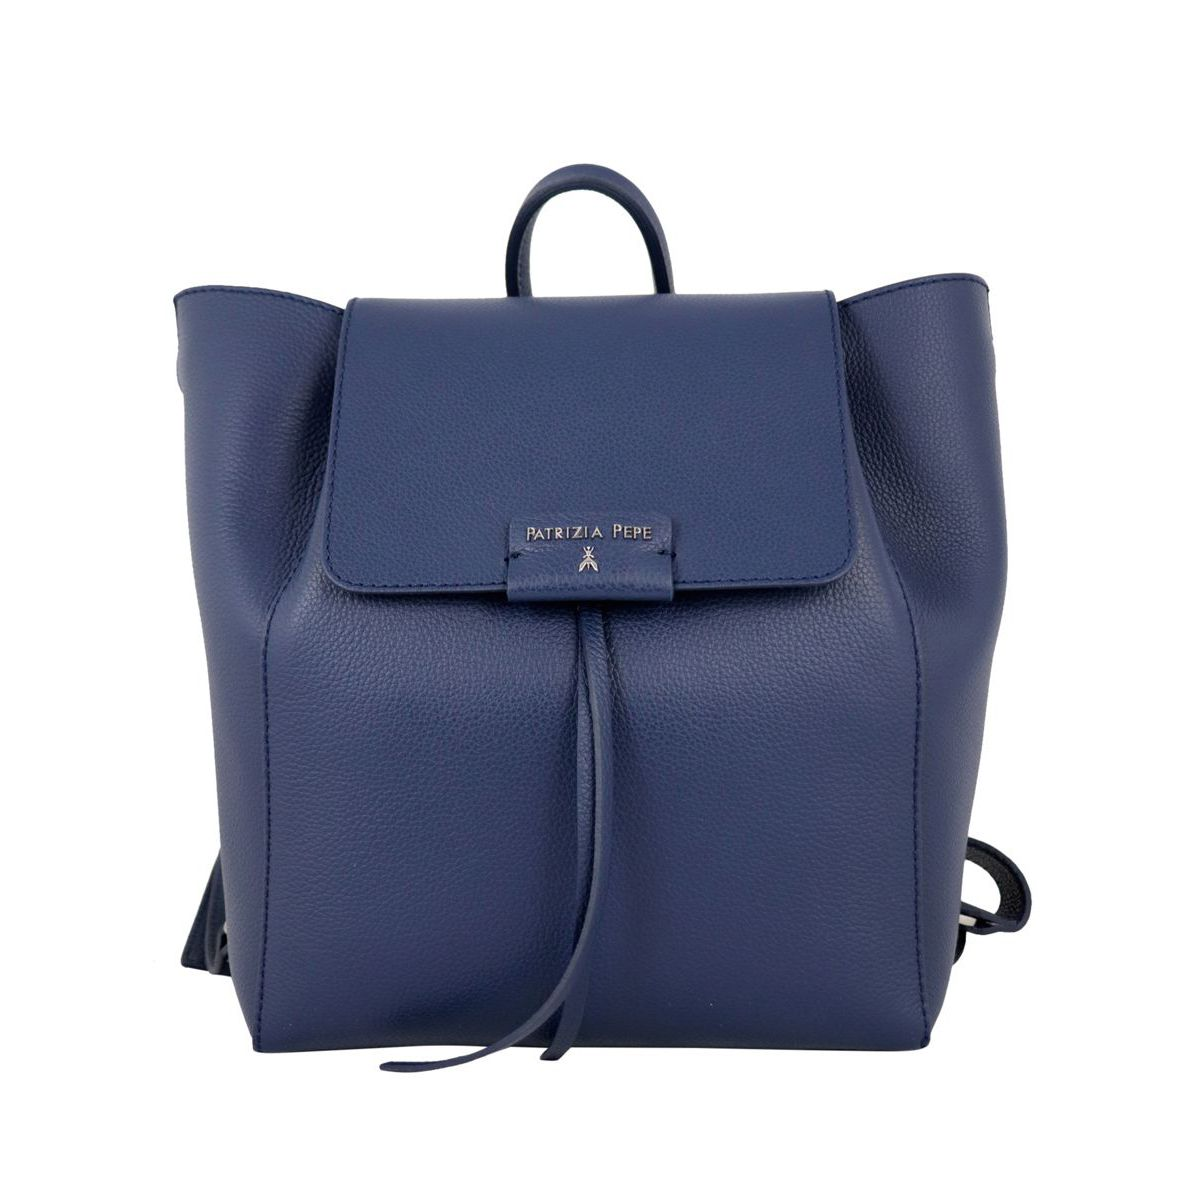 Textured leather backpack with logo Blue Patrizia Pepe